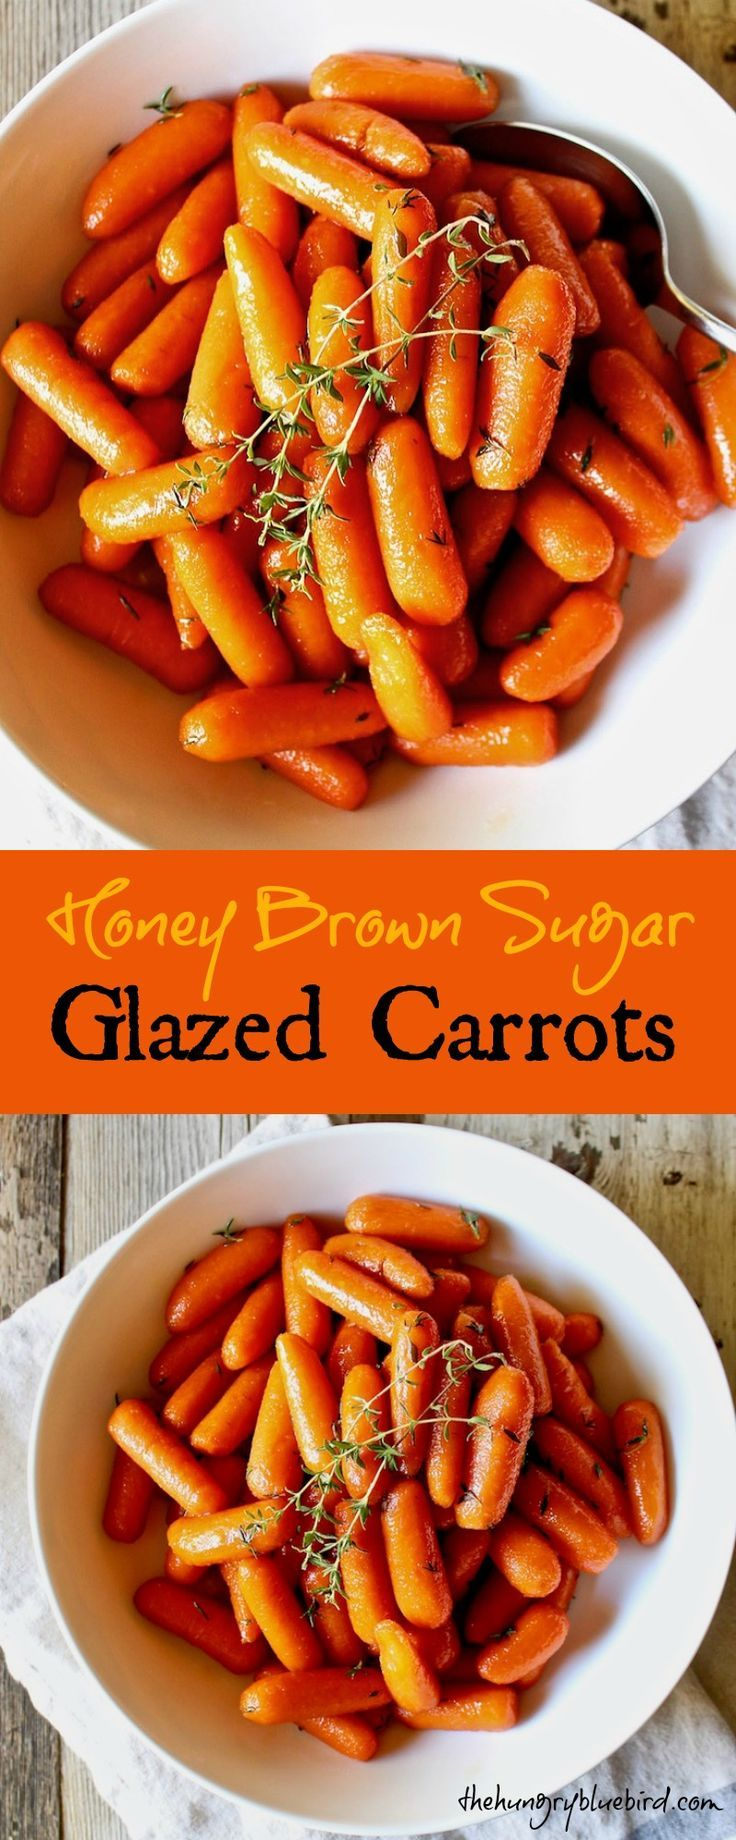 Baby carrots cooked on the stovetop in butter, honey and brown sugar until tender and glazed, finished off with a sprinkling of fresh thyme.